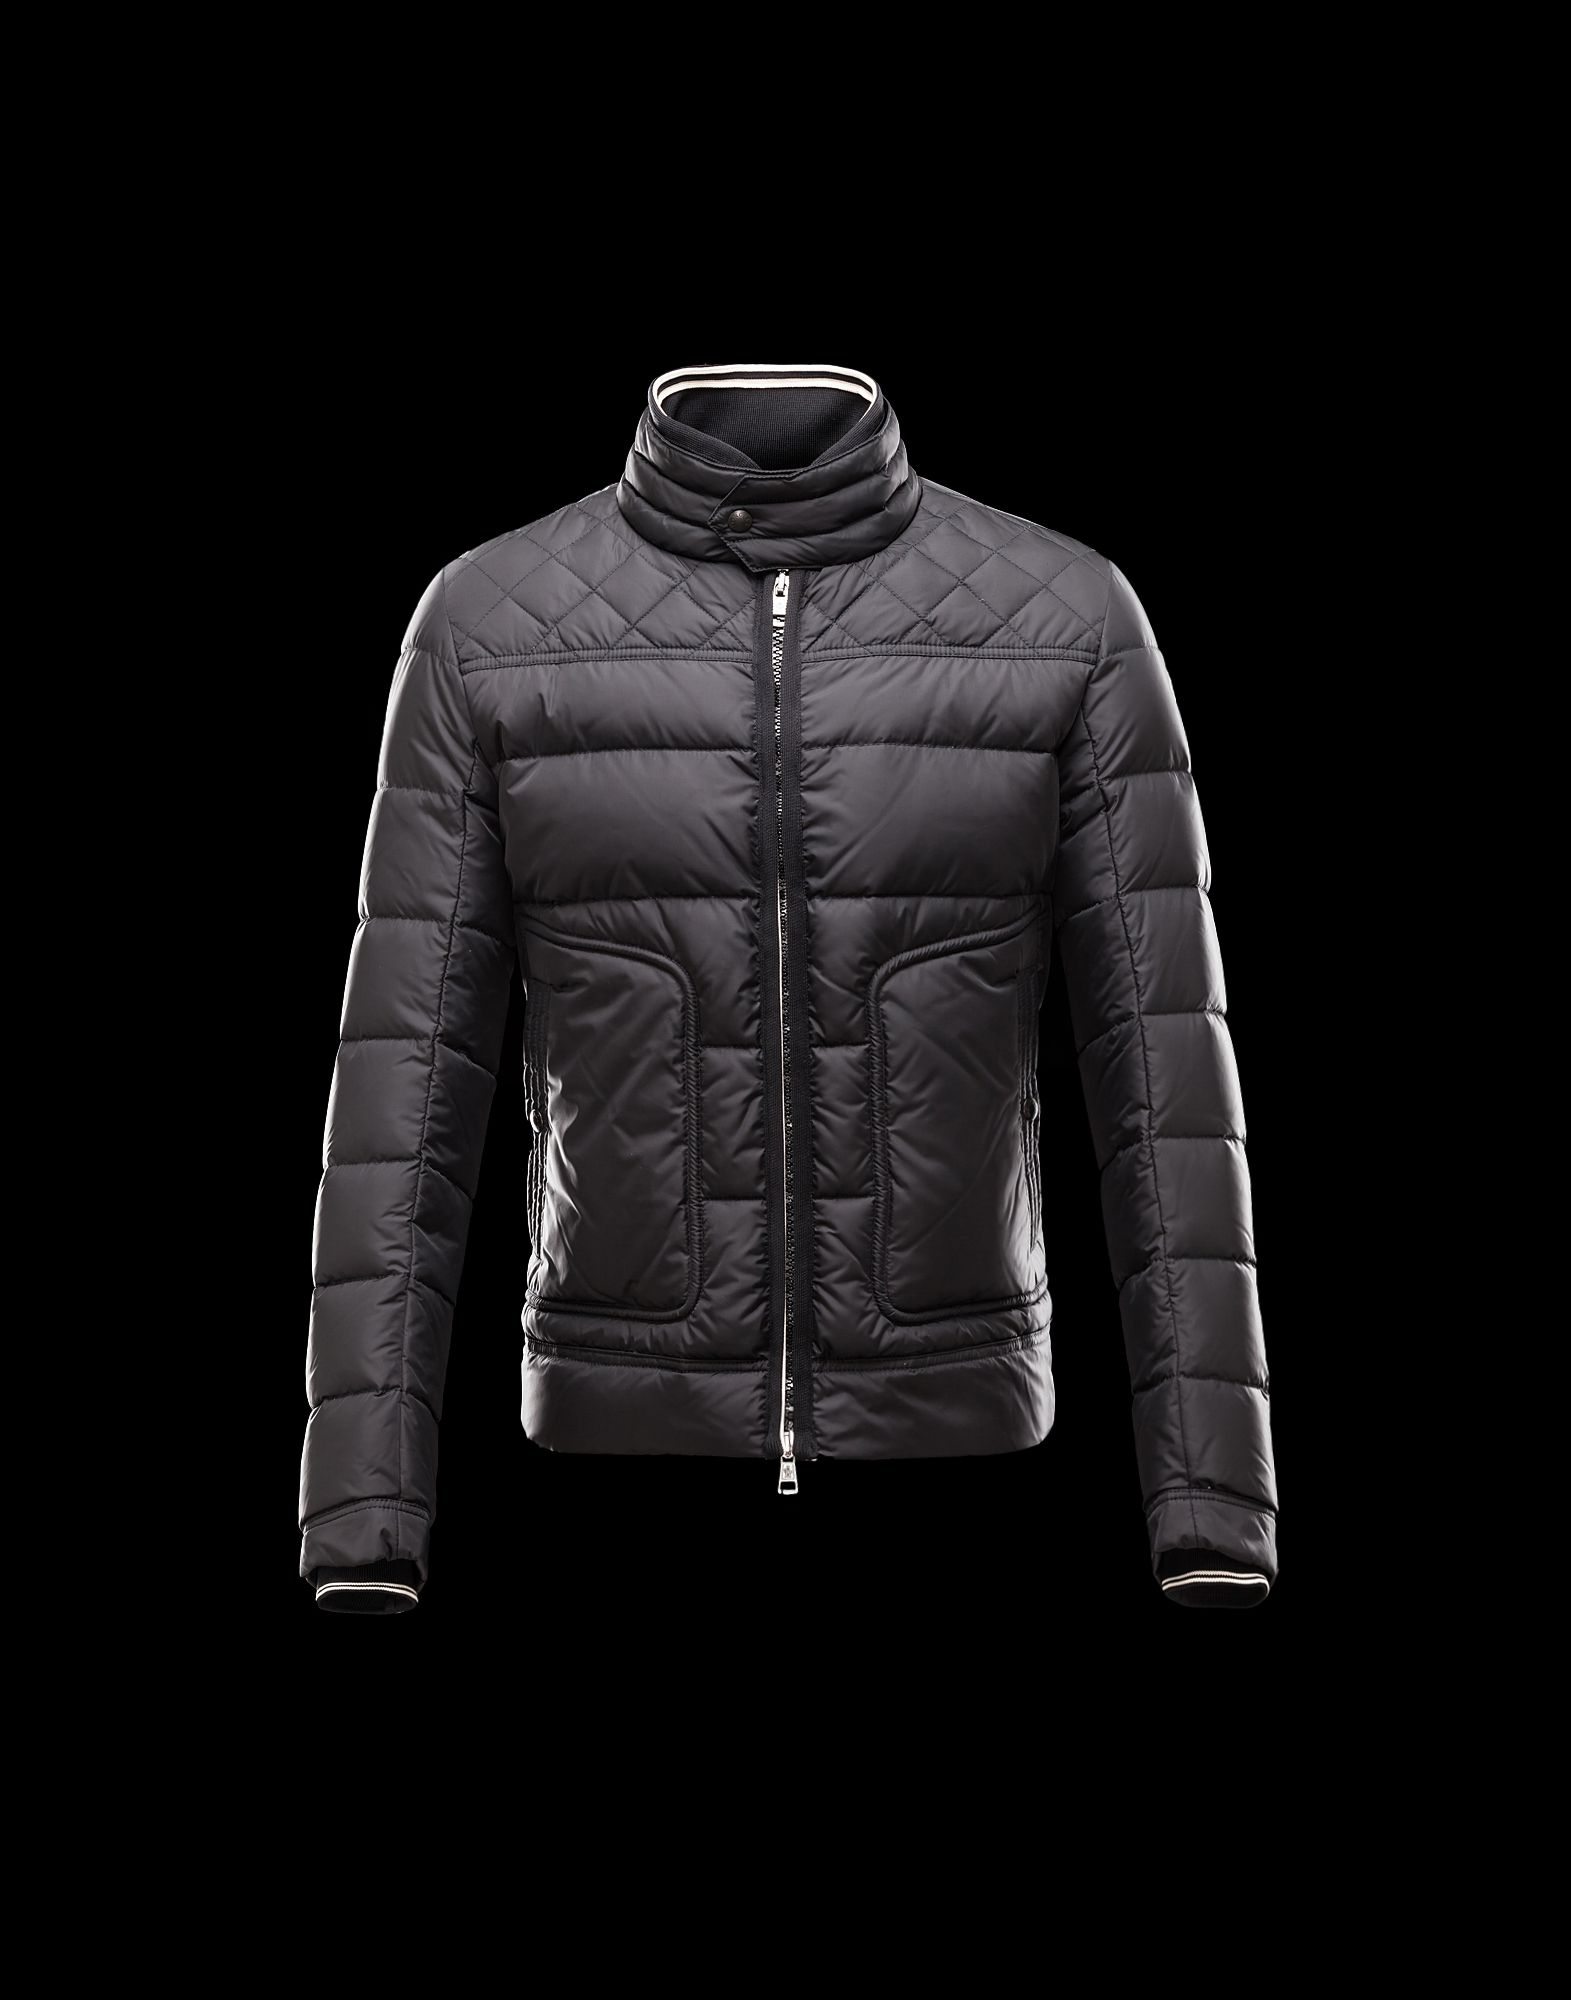 Moncler RIVOAL jacket man down jacket